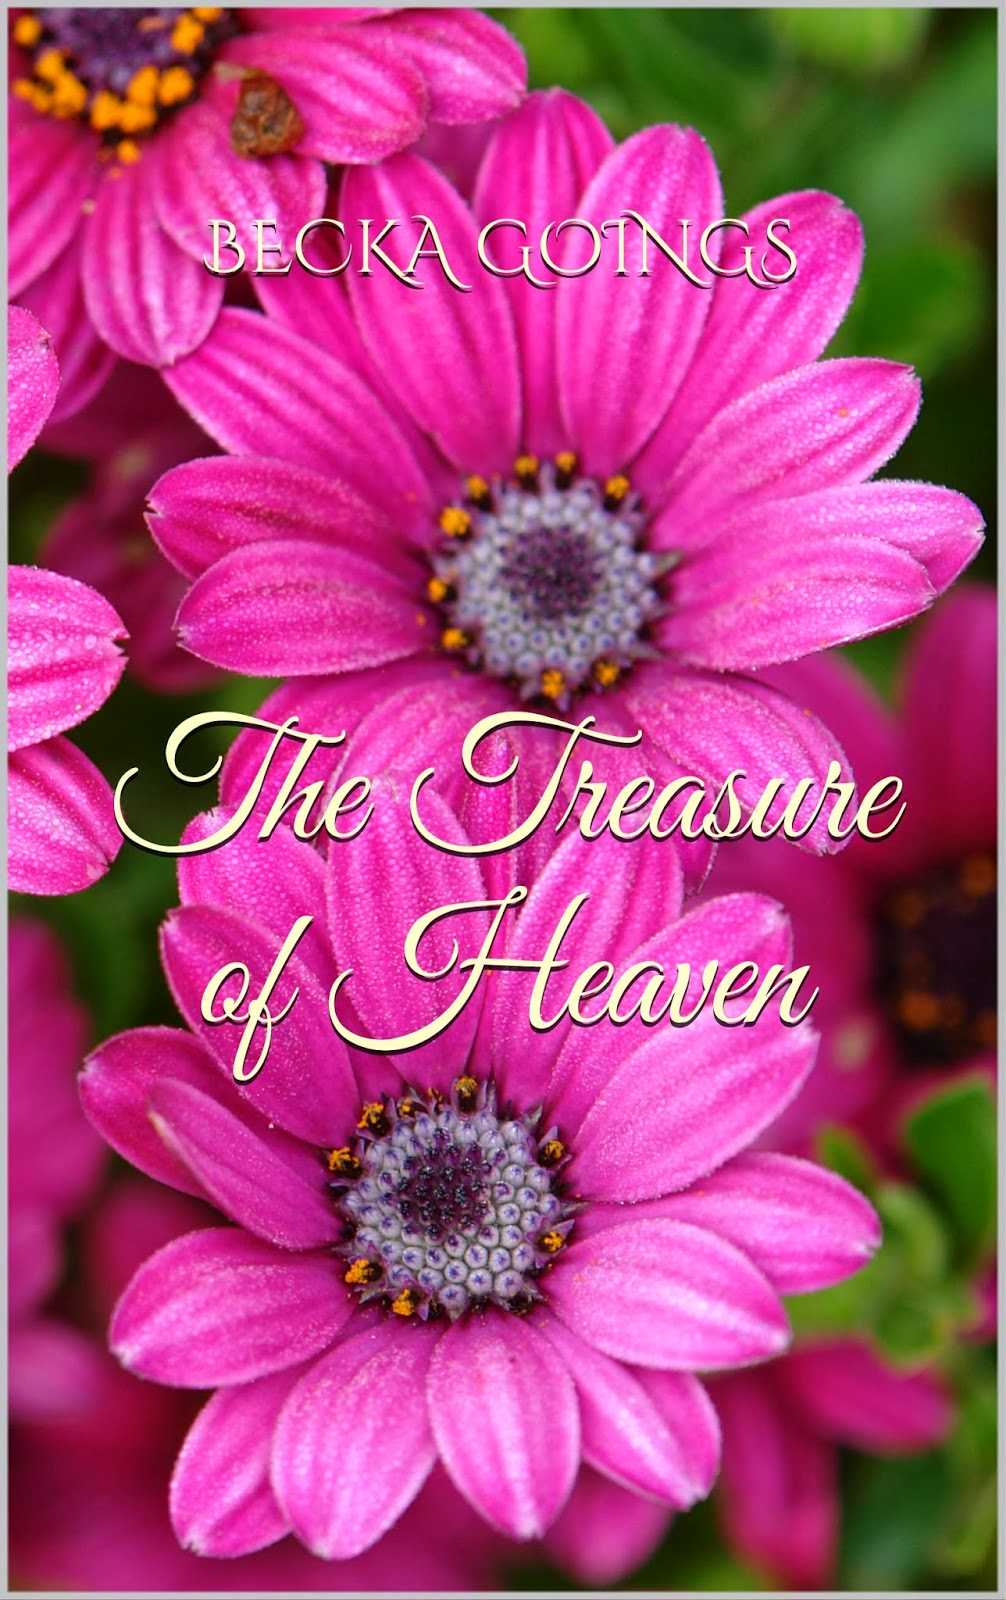 http://www.amazon.com/Treasure-Heaven-Becka-Goings-ebook/dp/B00INCJGGG/ref=sr_1_1?s=digital-text&ie=UTF8&qid=1393374066&sr=1-1